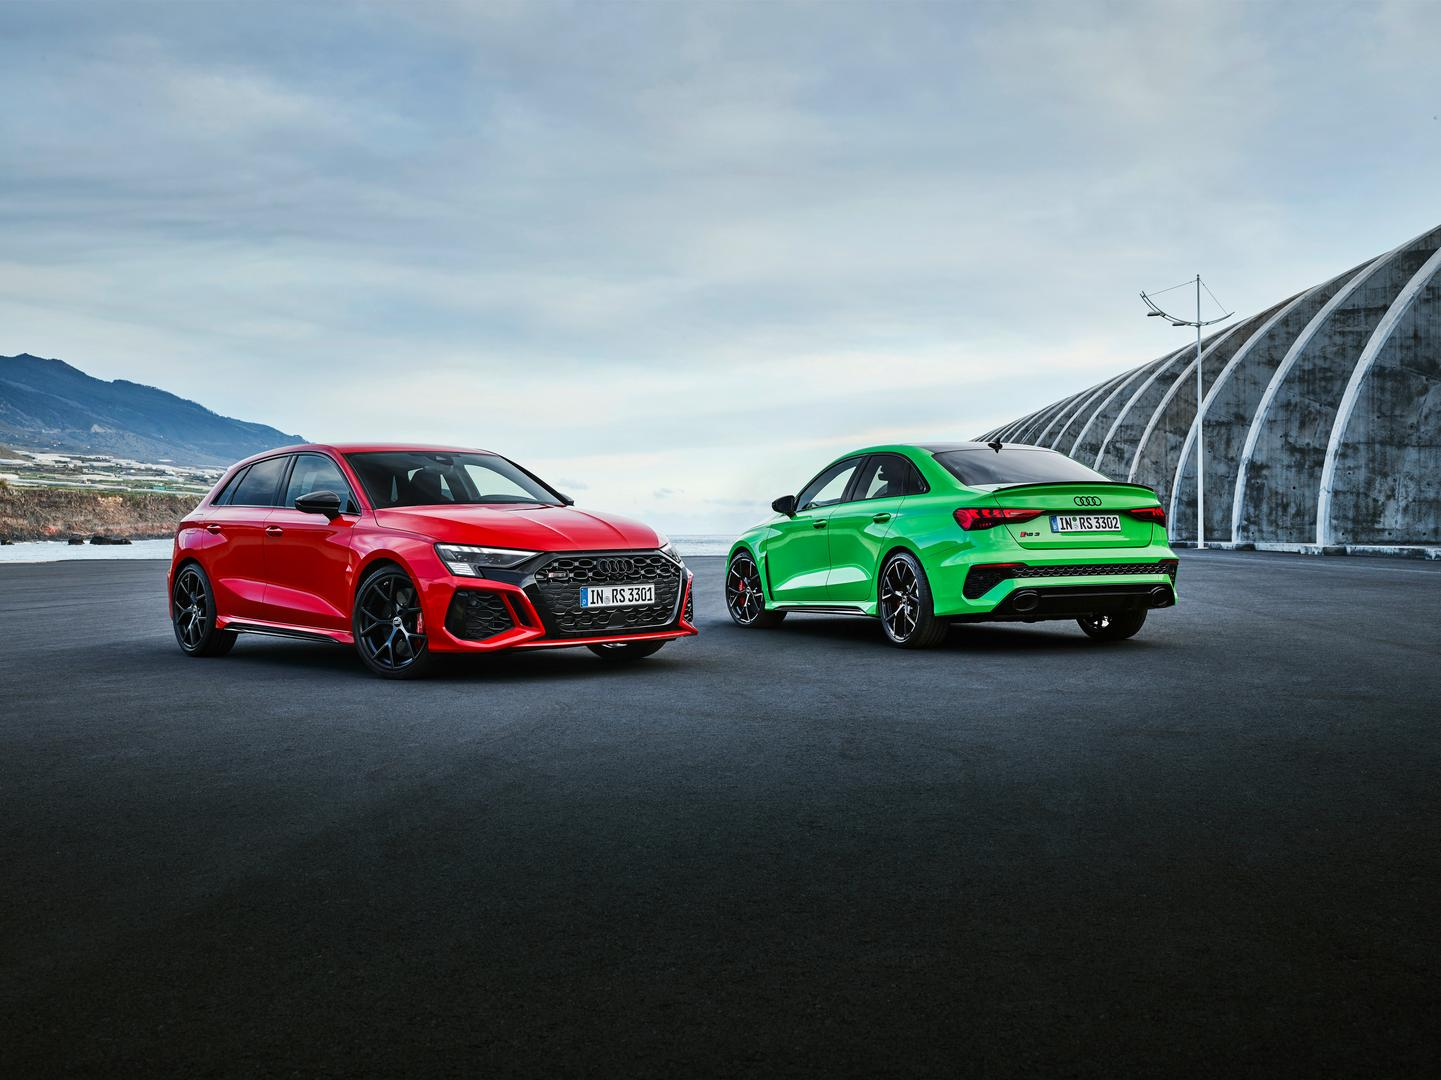 2022 Audi RS3 Revealed with 400hp and a €60,000 Price Tag